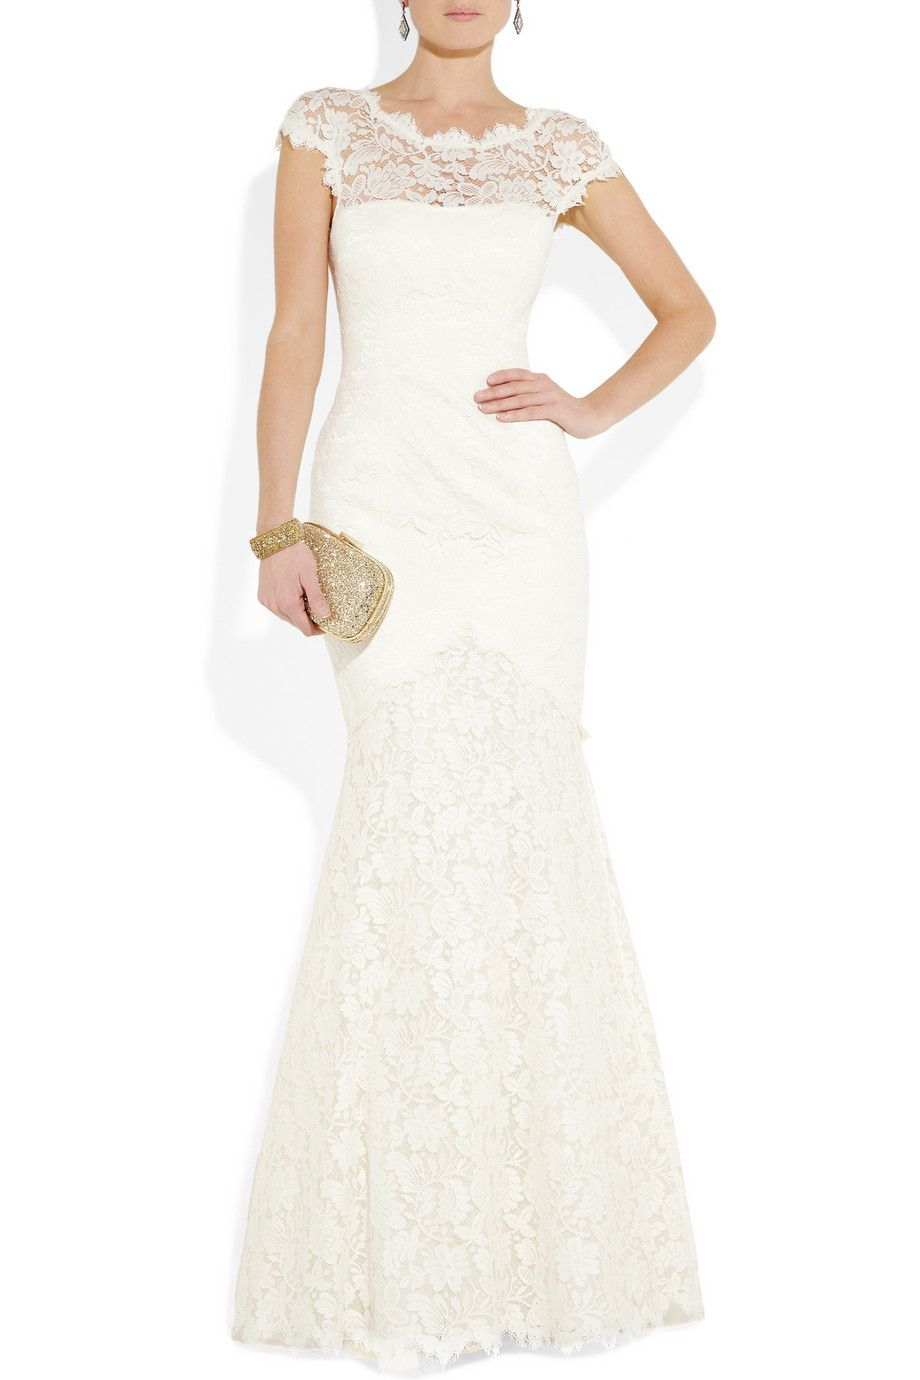 Temperley london bellerose lace dress netaportercom wedding